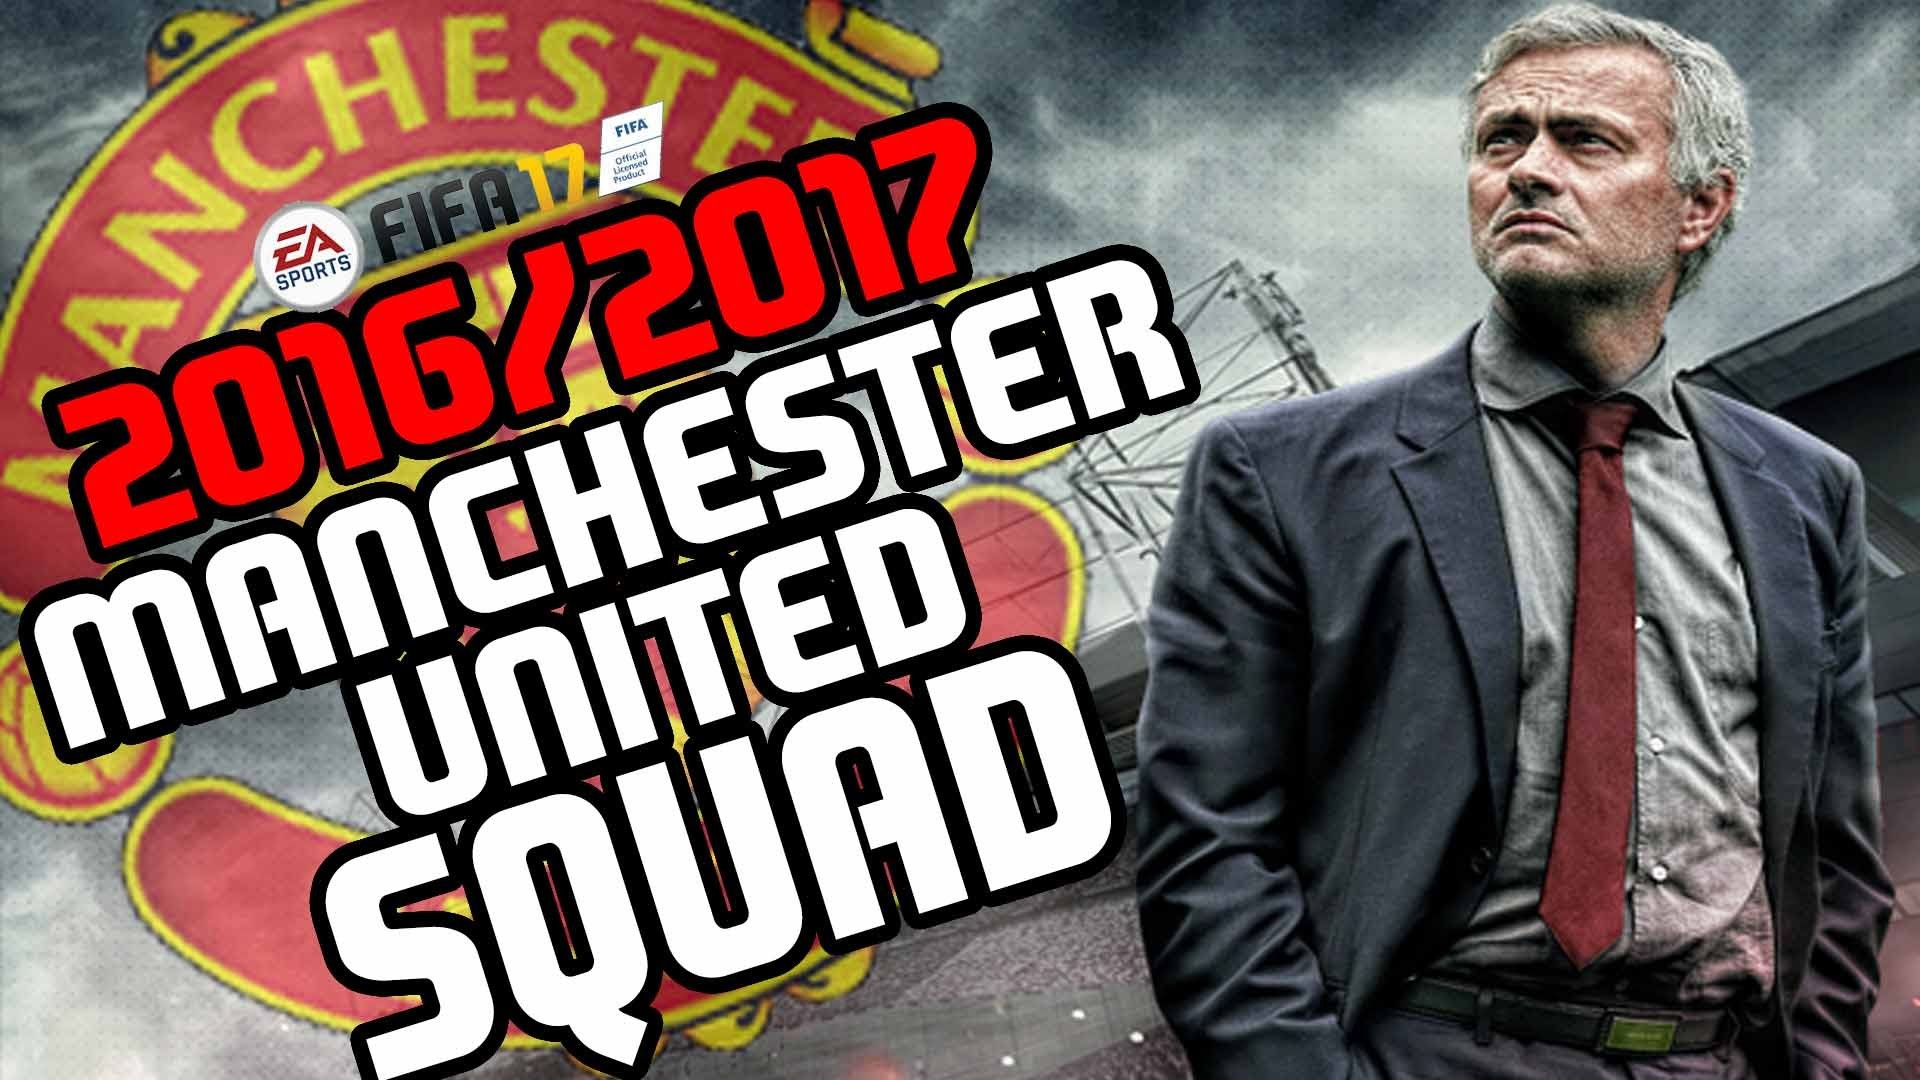 2016/2017 MANCHESTER UNITED SQUAD! TRANSFER RUMOURS AND CONFIRMED TRANSFERS  SQUAD! MAN UTD POGBA! – YouTube